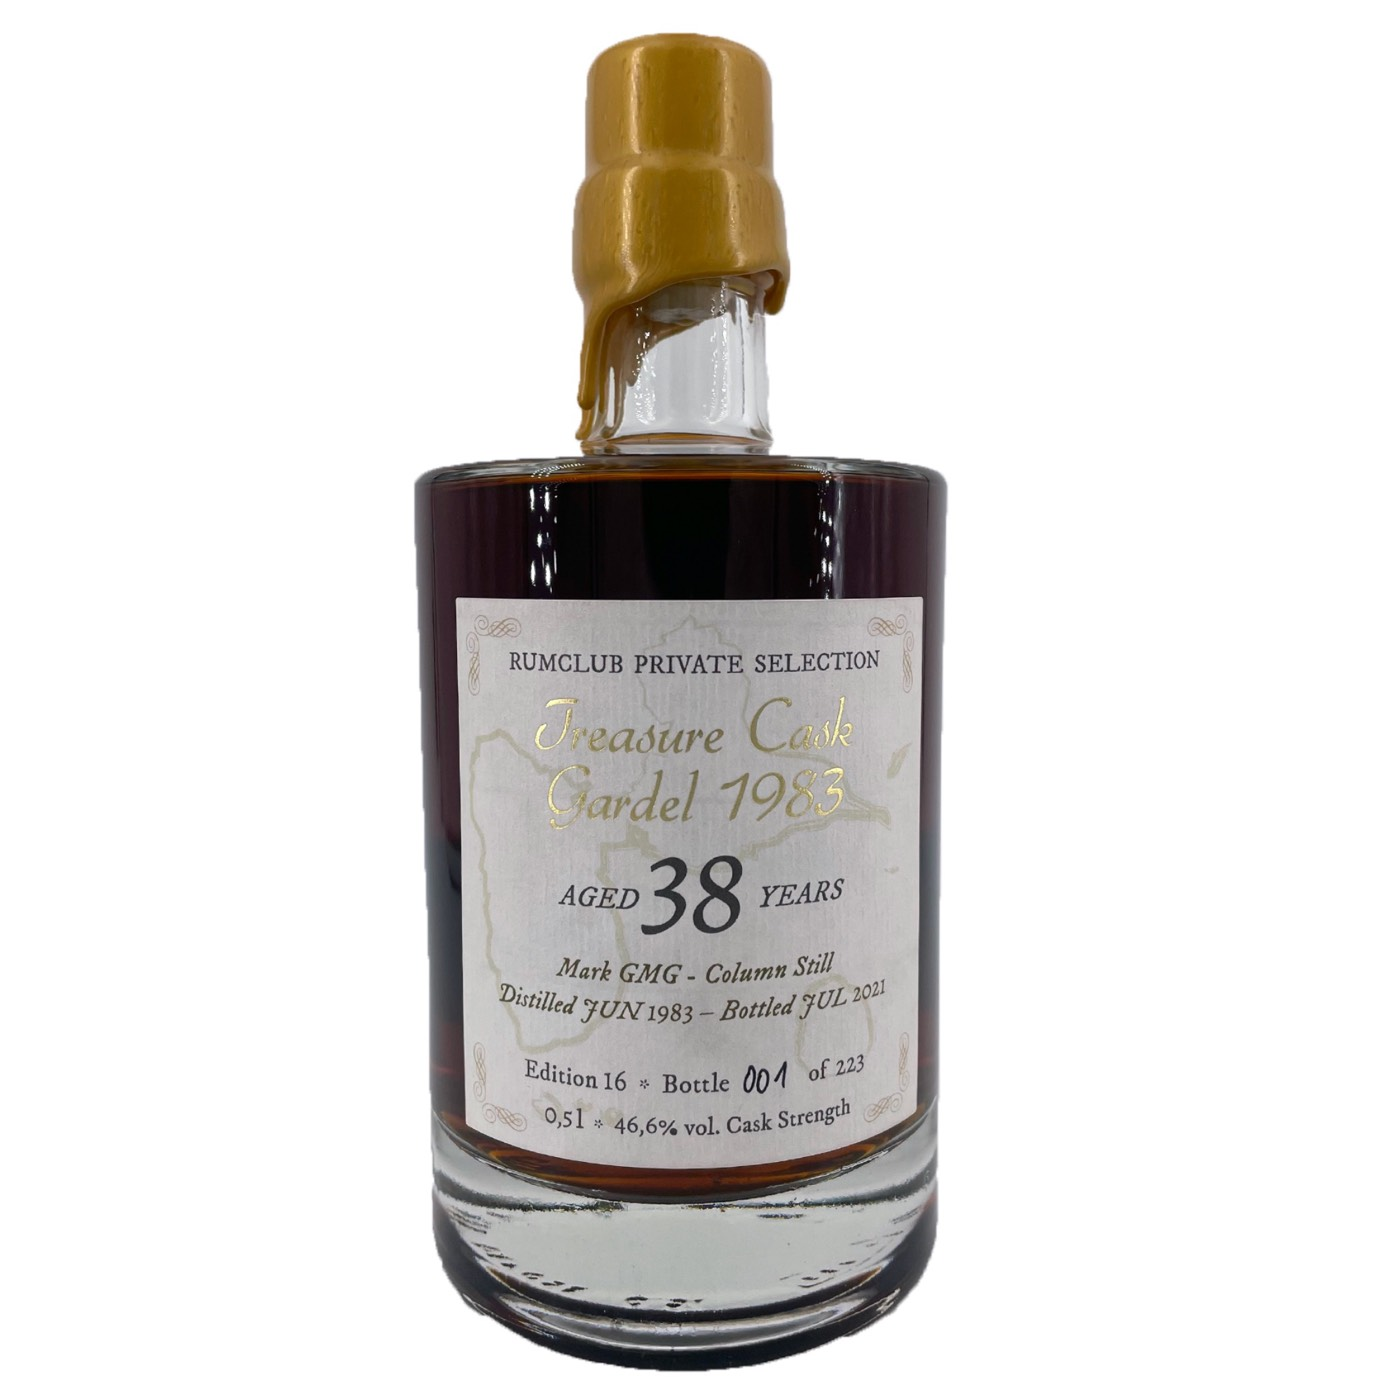 Bottle image of Rumclub Private Selection Ed. 16 Treasure Cask GMG